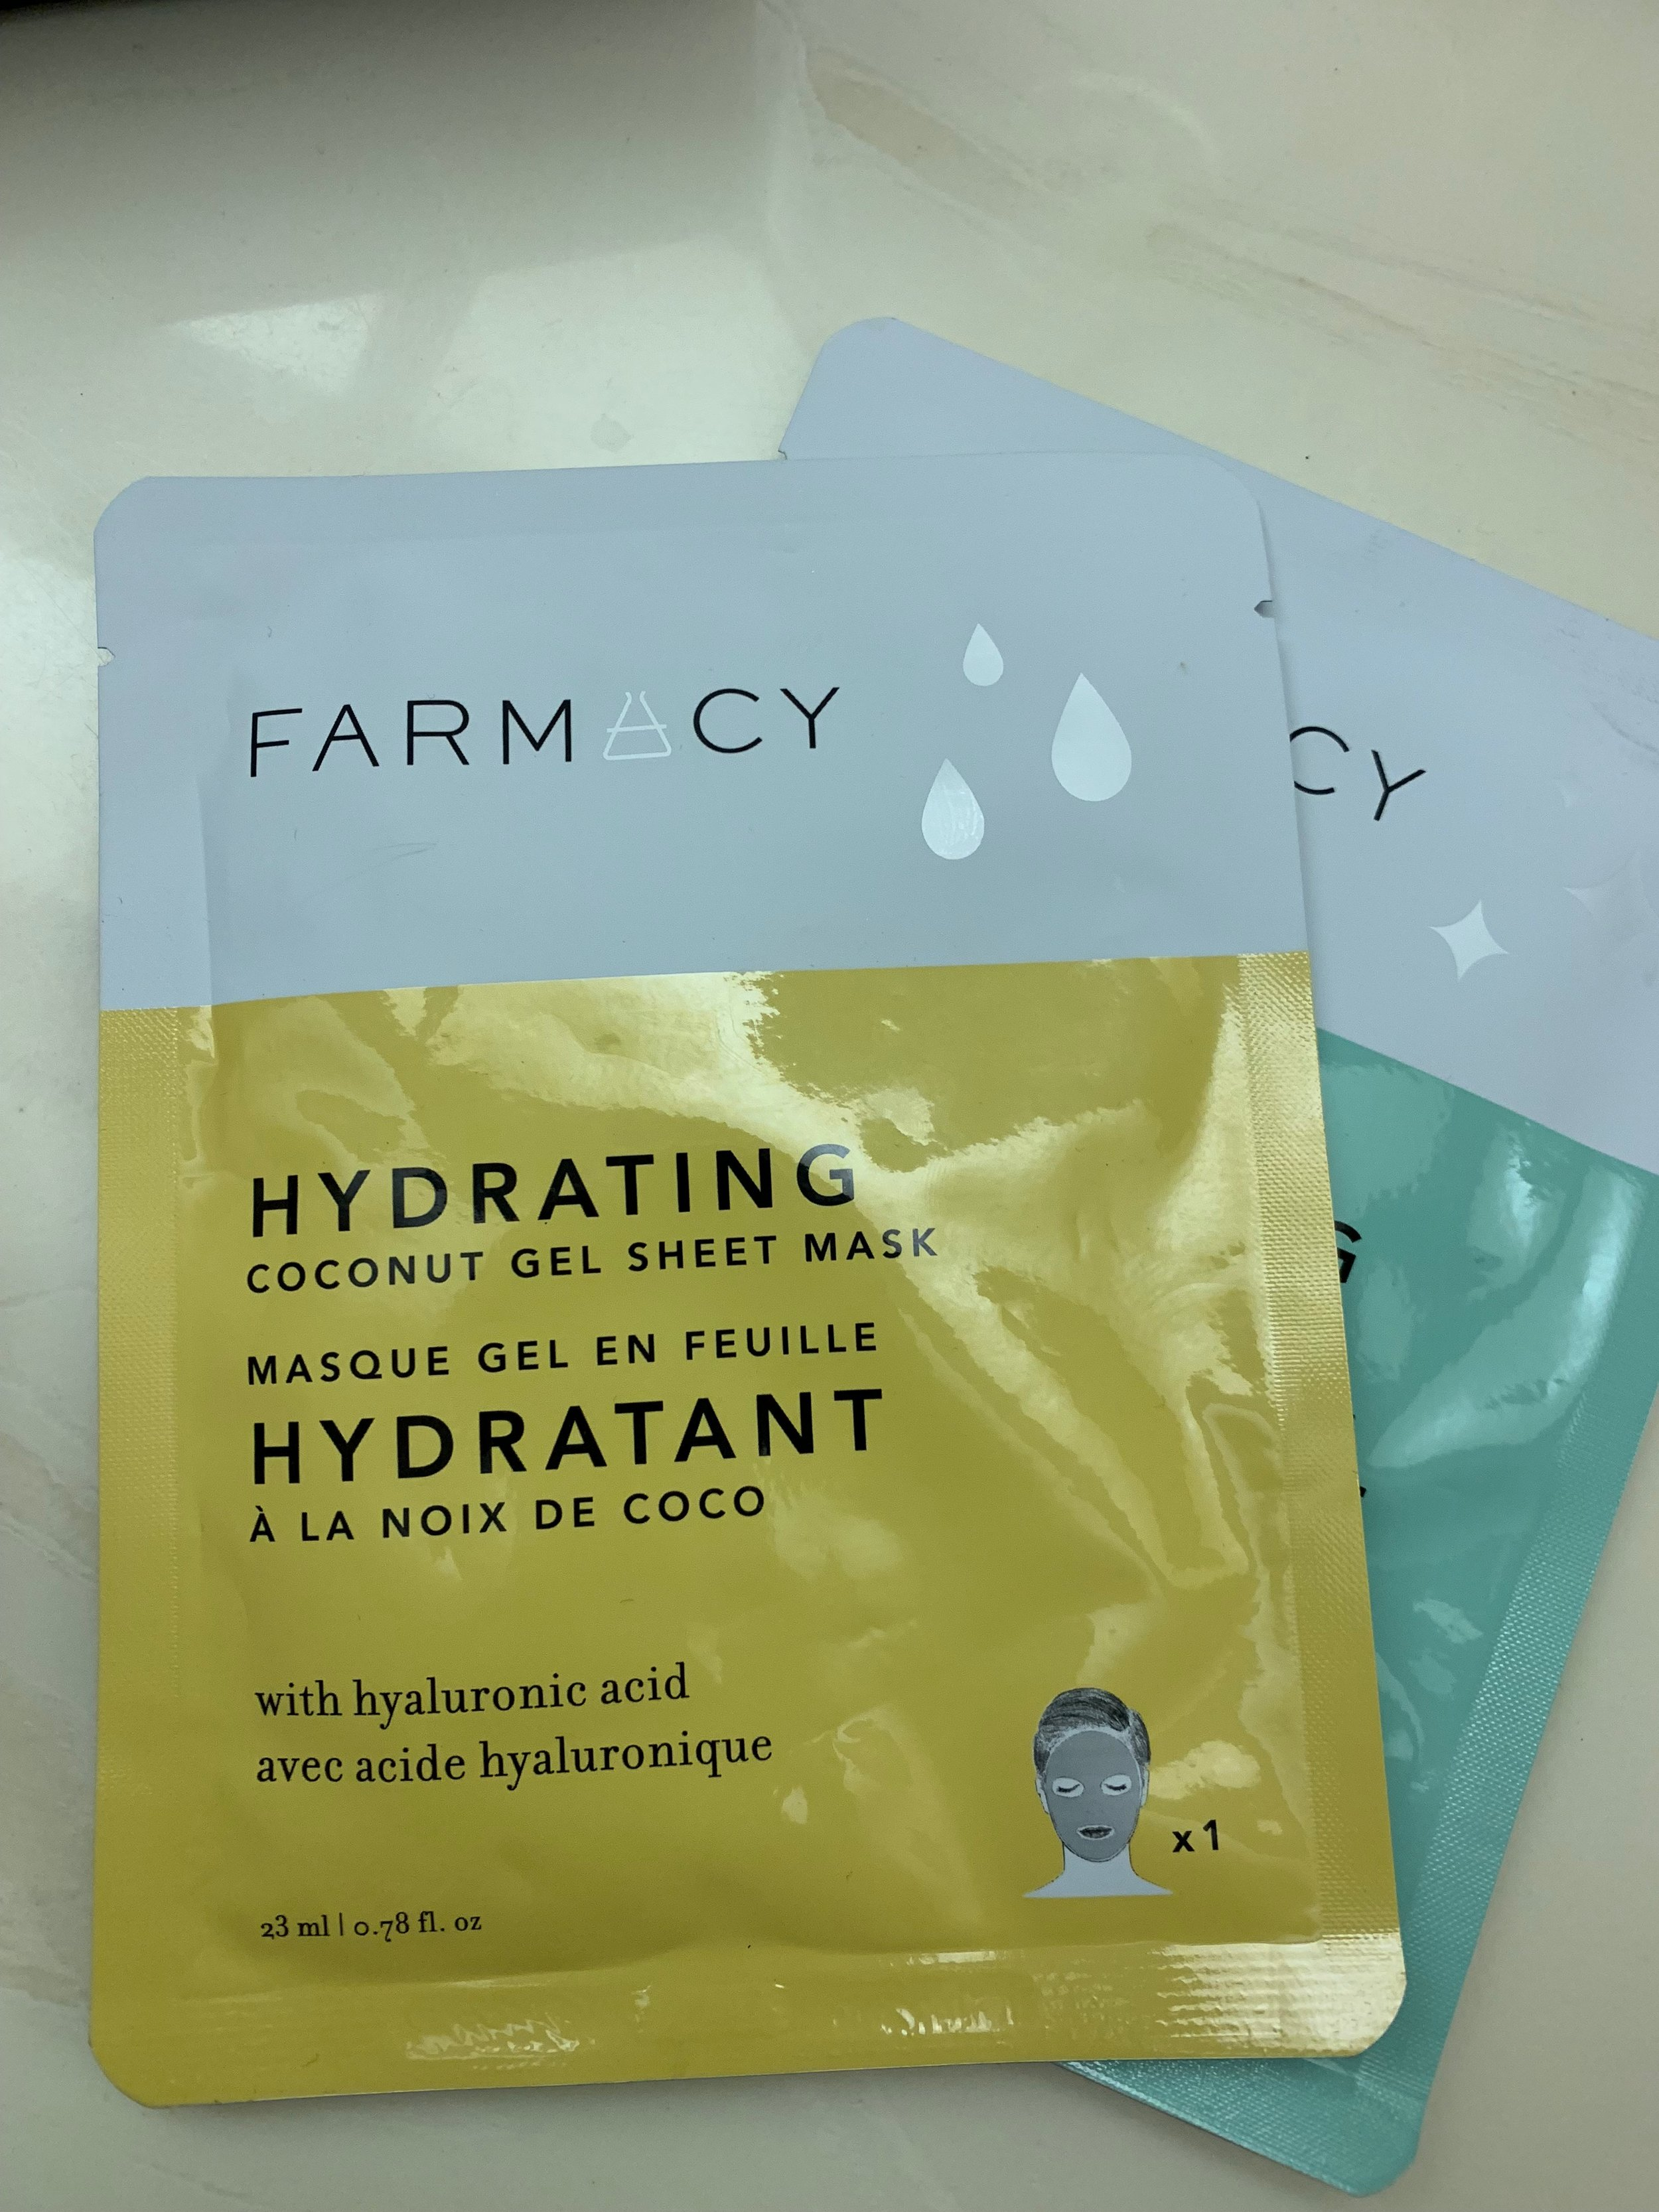 A few face  masks  by FARMACY. I haven't tried them yet. I only buy hydrating face masks.